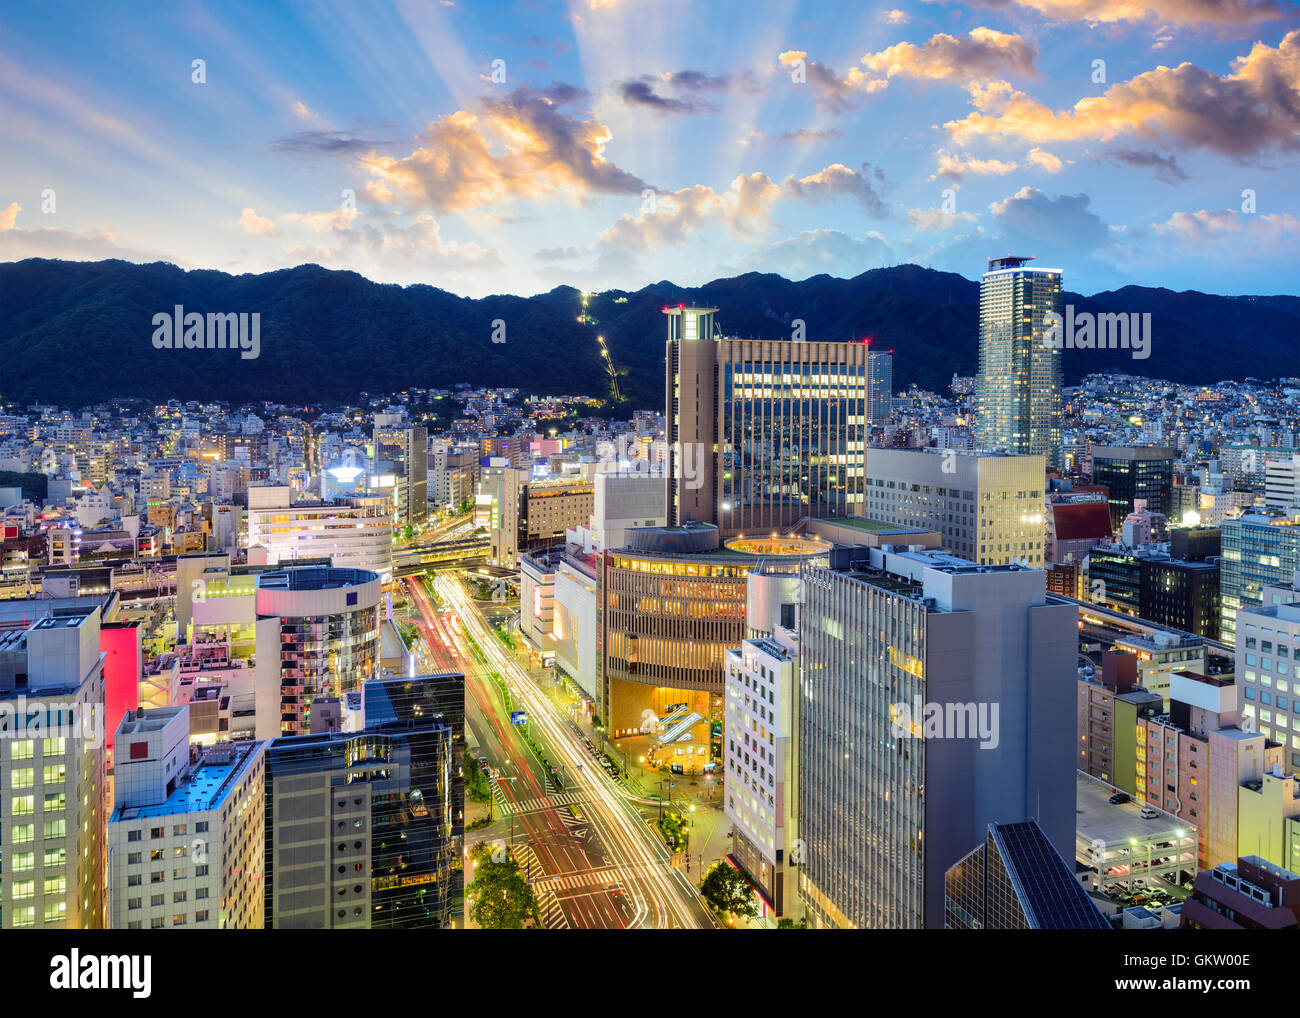 Kobe, Japan downtown skyline in the Sannomiya District against the backdrop of the Rokko Mountains. - Stock Image